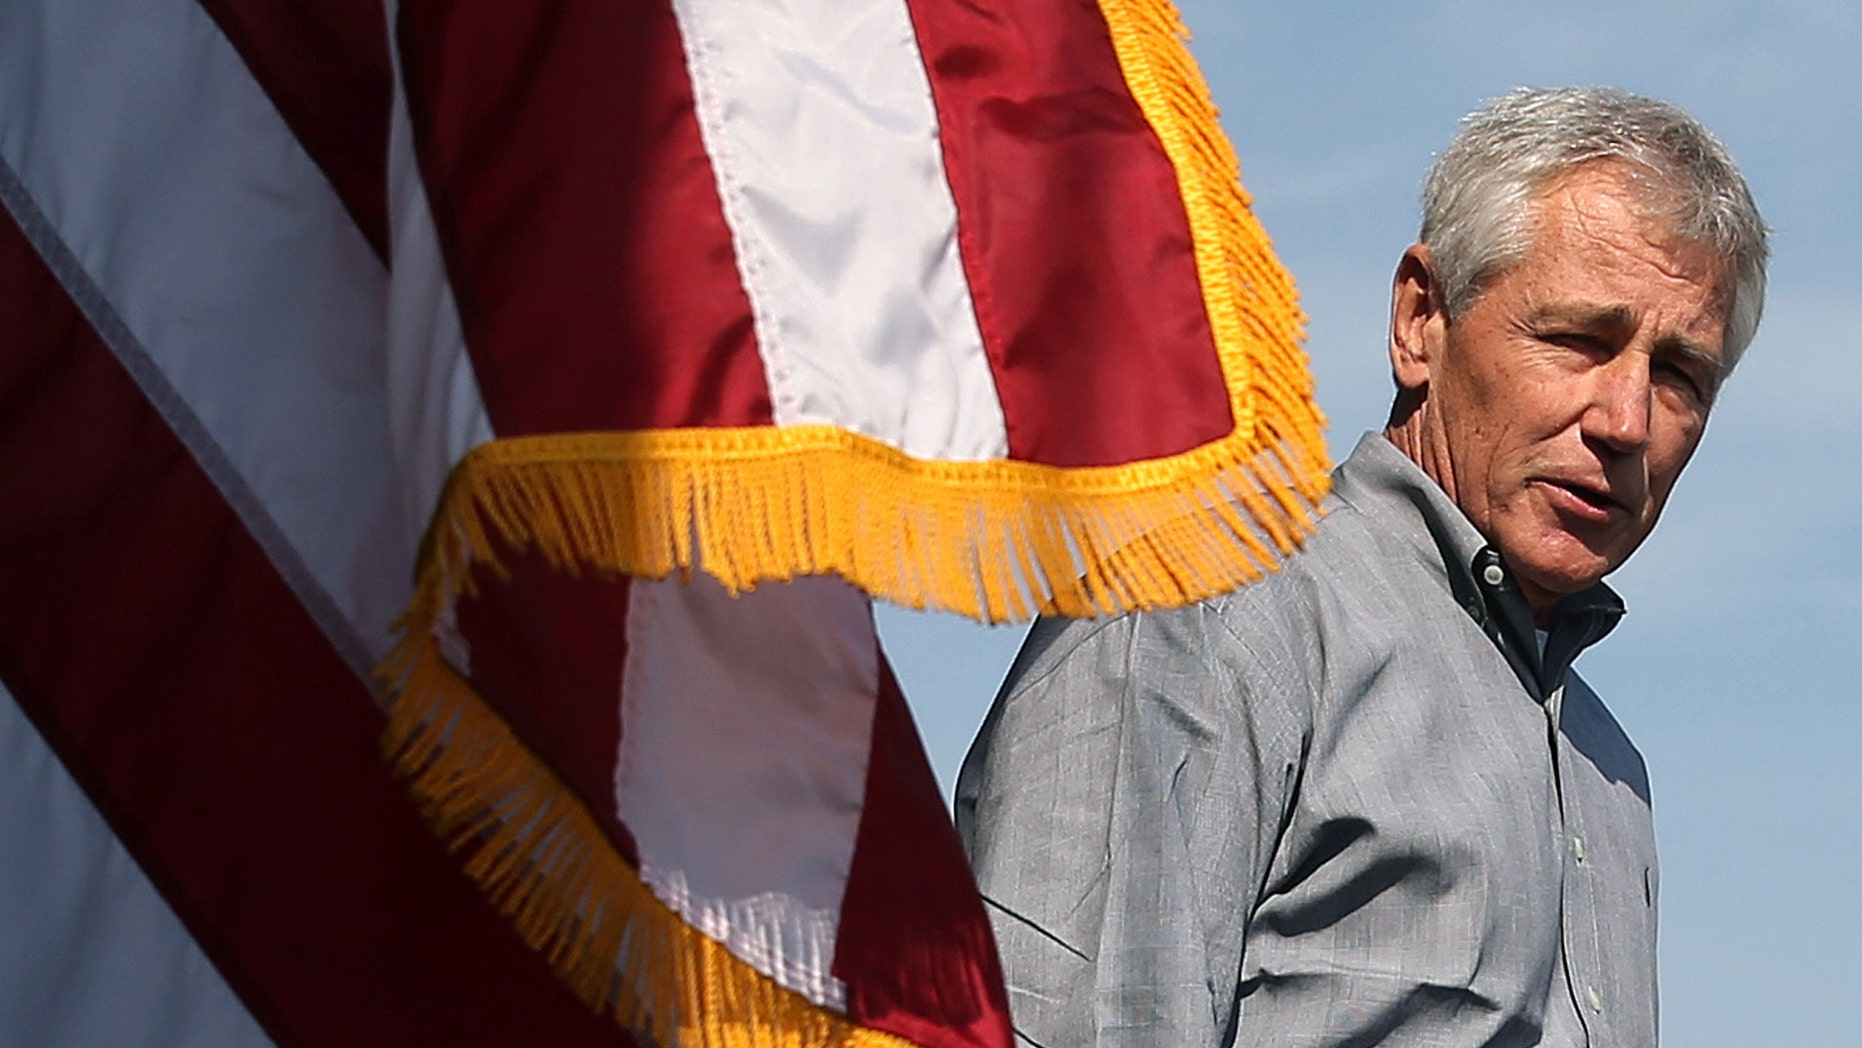 """U.S. Defense Secretary Chuck Hagel speaks to military service members aboard the USS Ponce in Manama, Bahrain, Friday, Dec. 6, 2013. Standing on the massive deck of the Navy's USS Ponce, Hagel said the U.S. is entering the new nuclear pact with Iran """"very clear eyed"""" and it remains to be see whether Tehran is serious about keeping its development peaceful. (AP Photo/Mark Wilson, Pool)"""